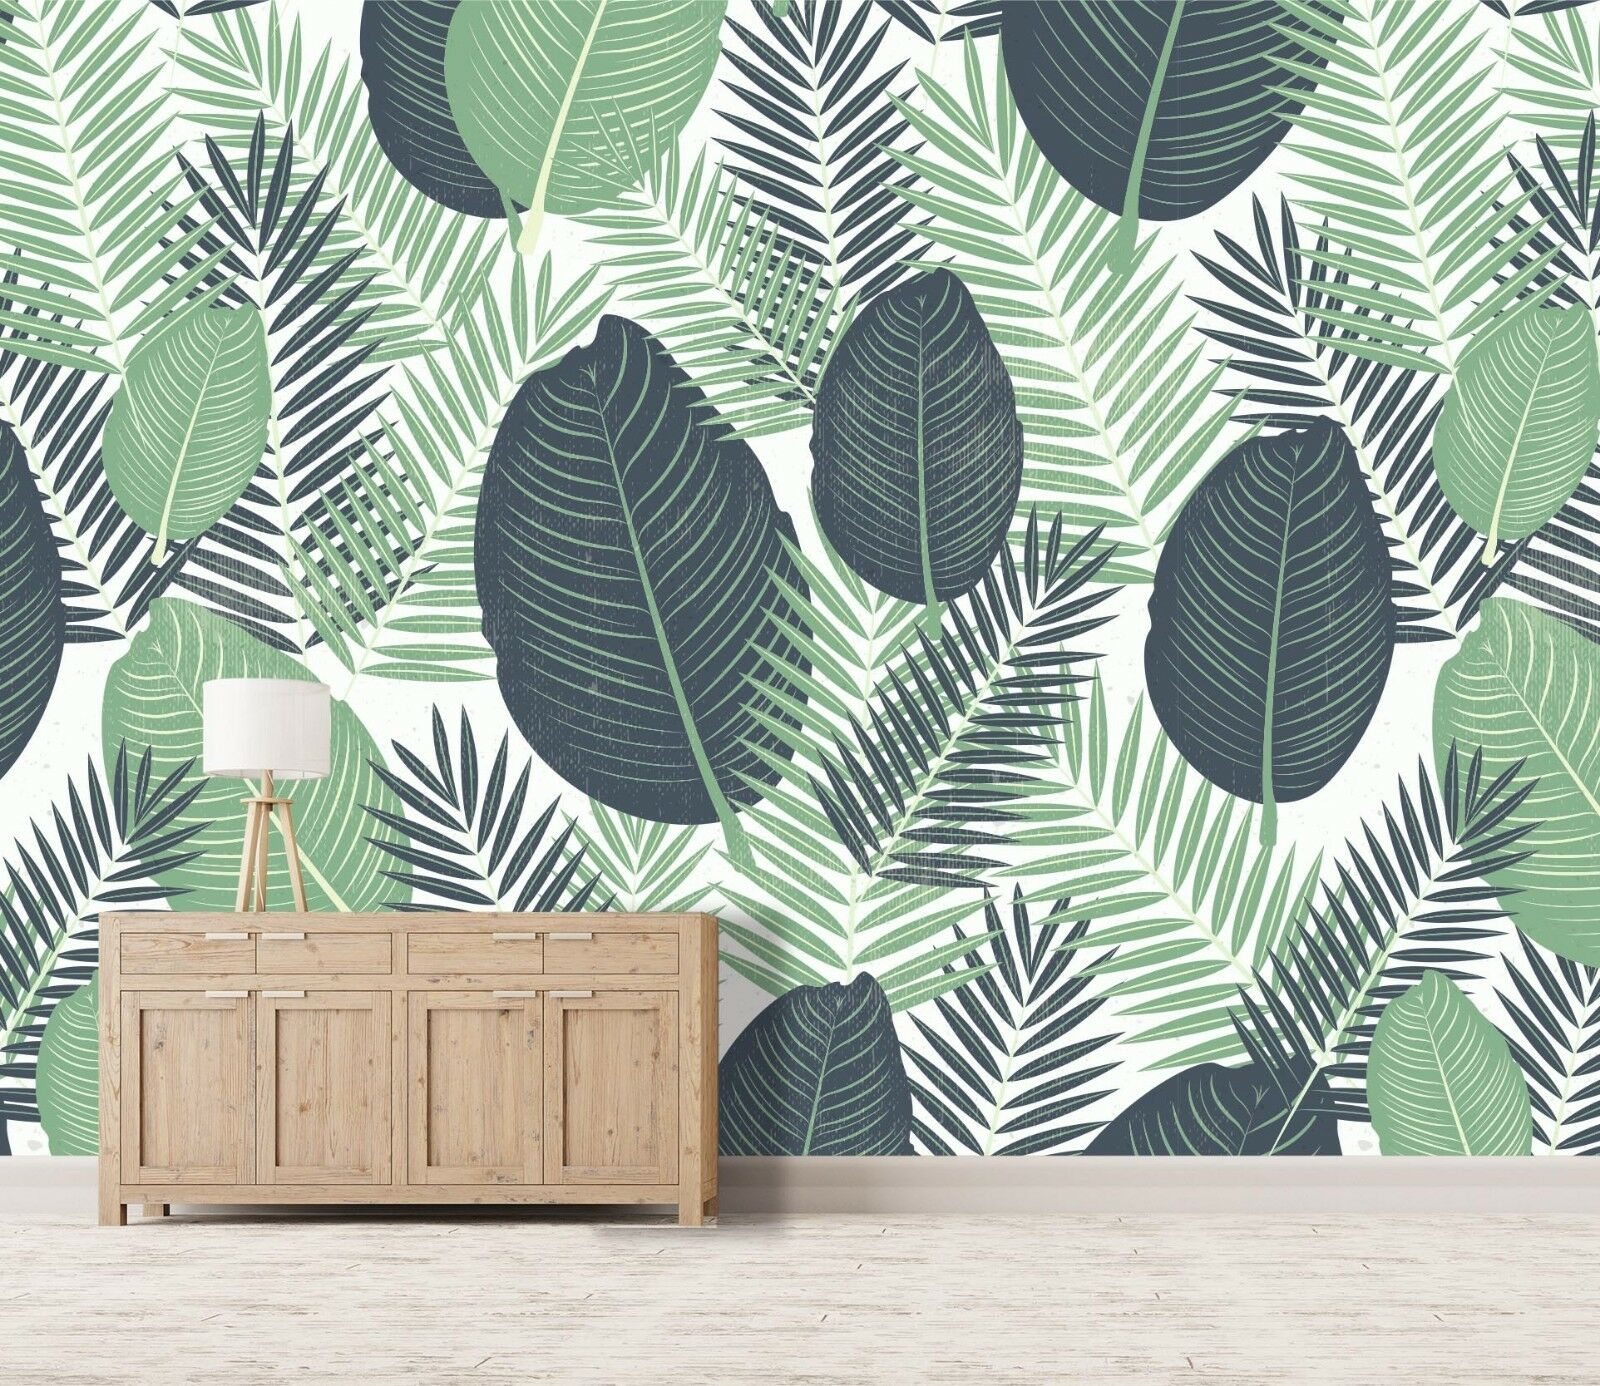 3D Leaf Texture 82 Wall Paper Exclusive MXY Wallpaper Mural Decal Indoor Wall AJ